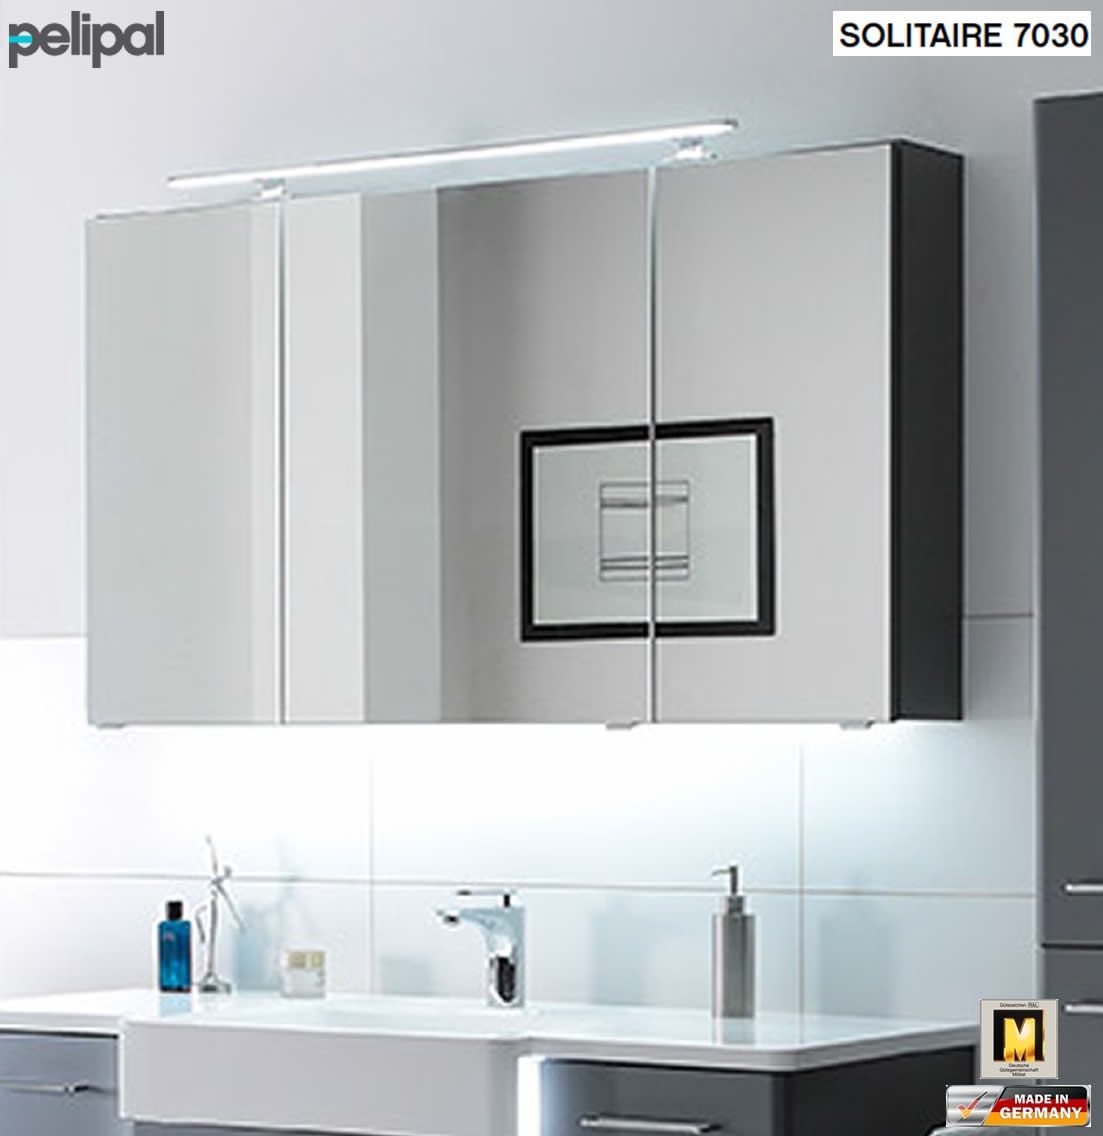 pelipal solitaire 7030 spiegelschrank 130 cm mit led. Black Bedroom Furniture Sets. Home Design Ideas